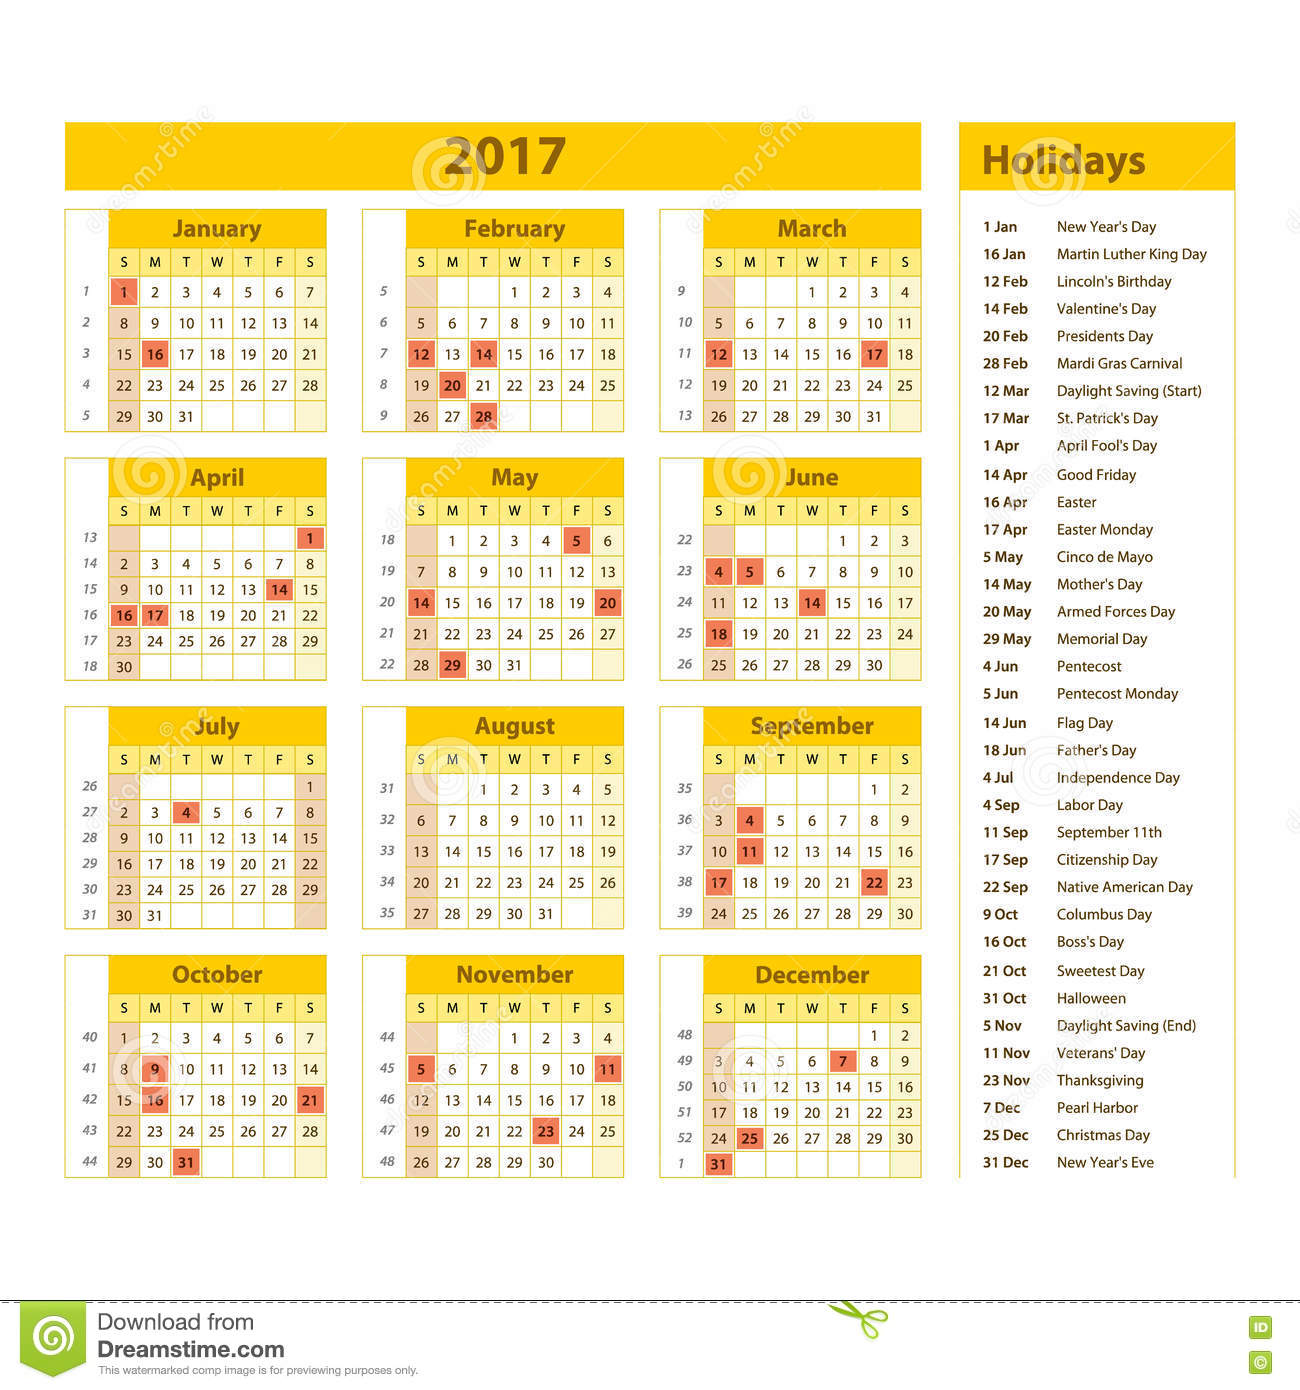 calendar with official holidays - Calendar